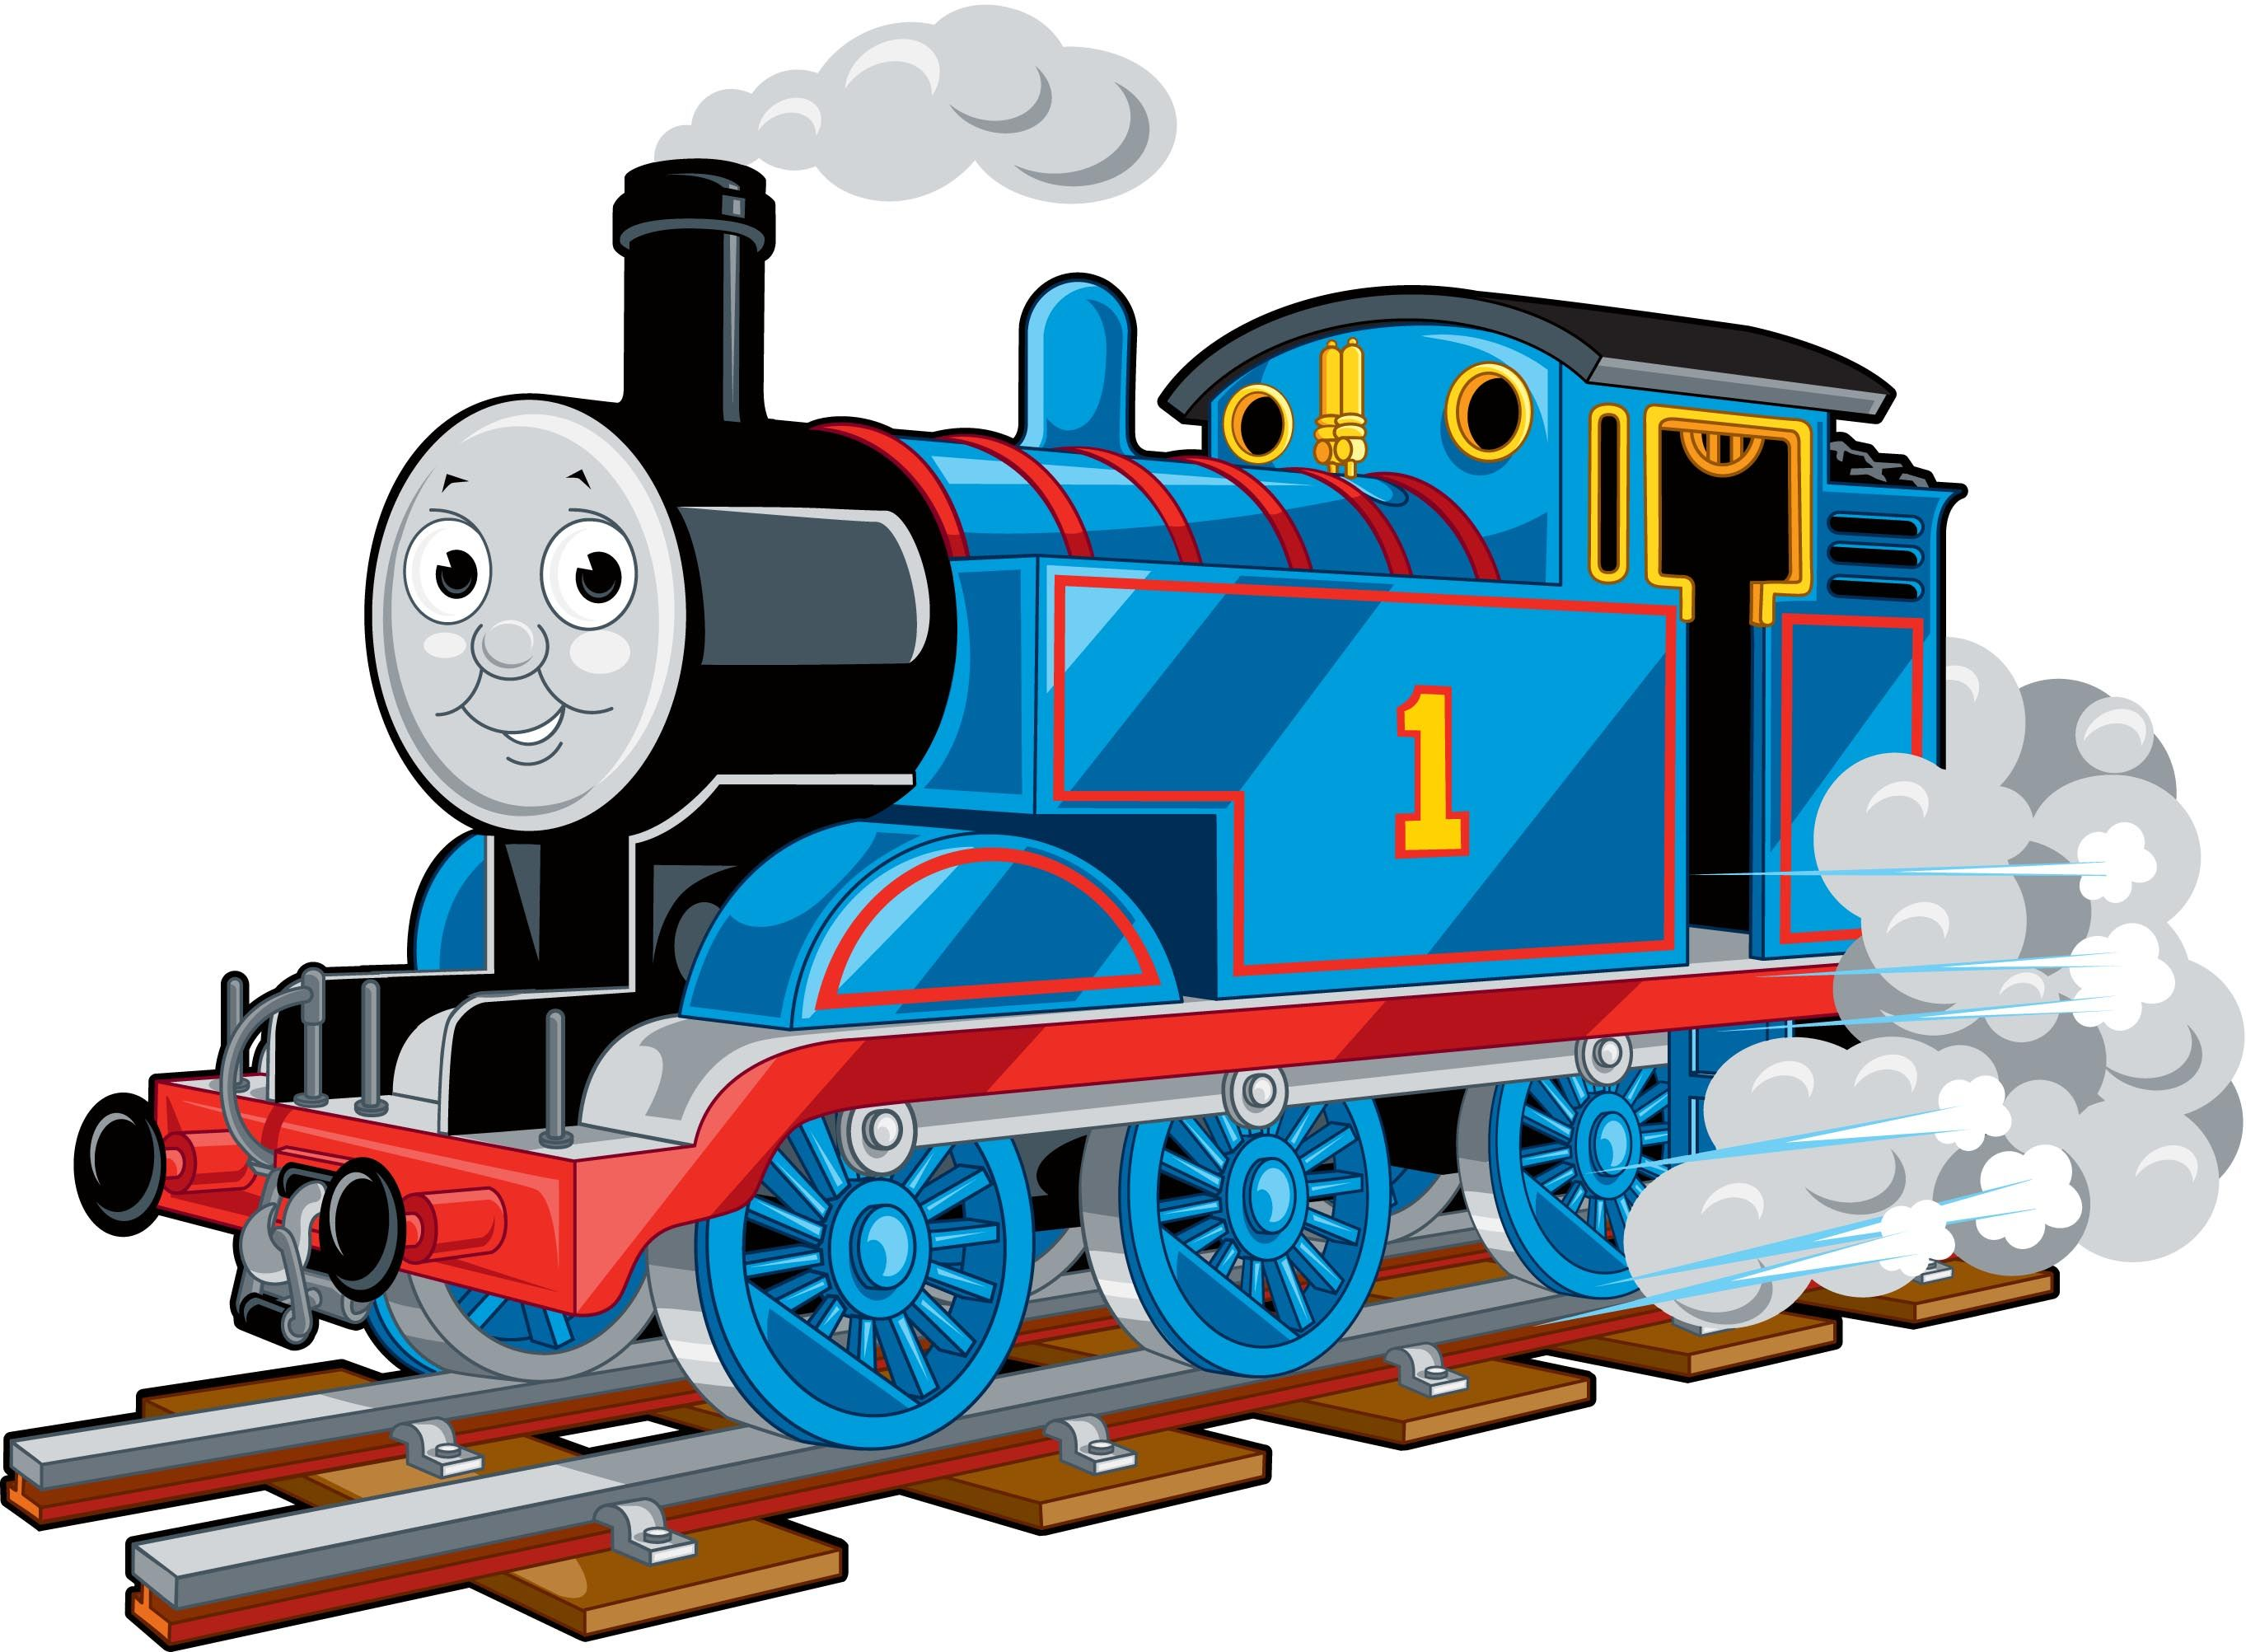 Thomas Print It Out For Decorations Thomas The Train Birthday